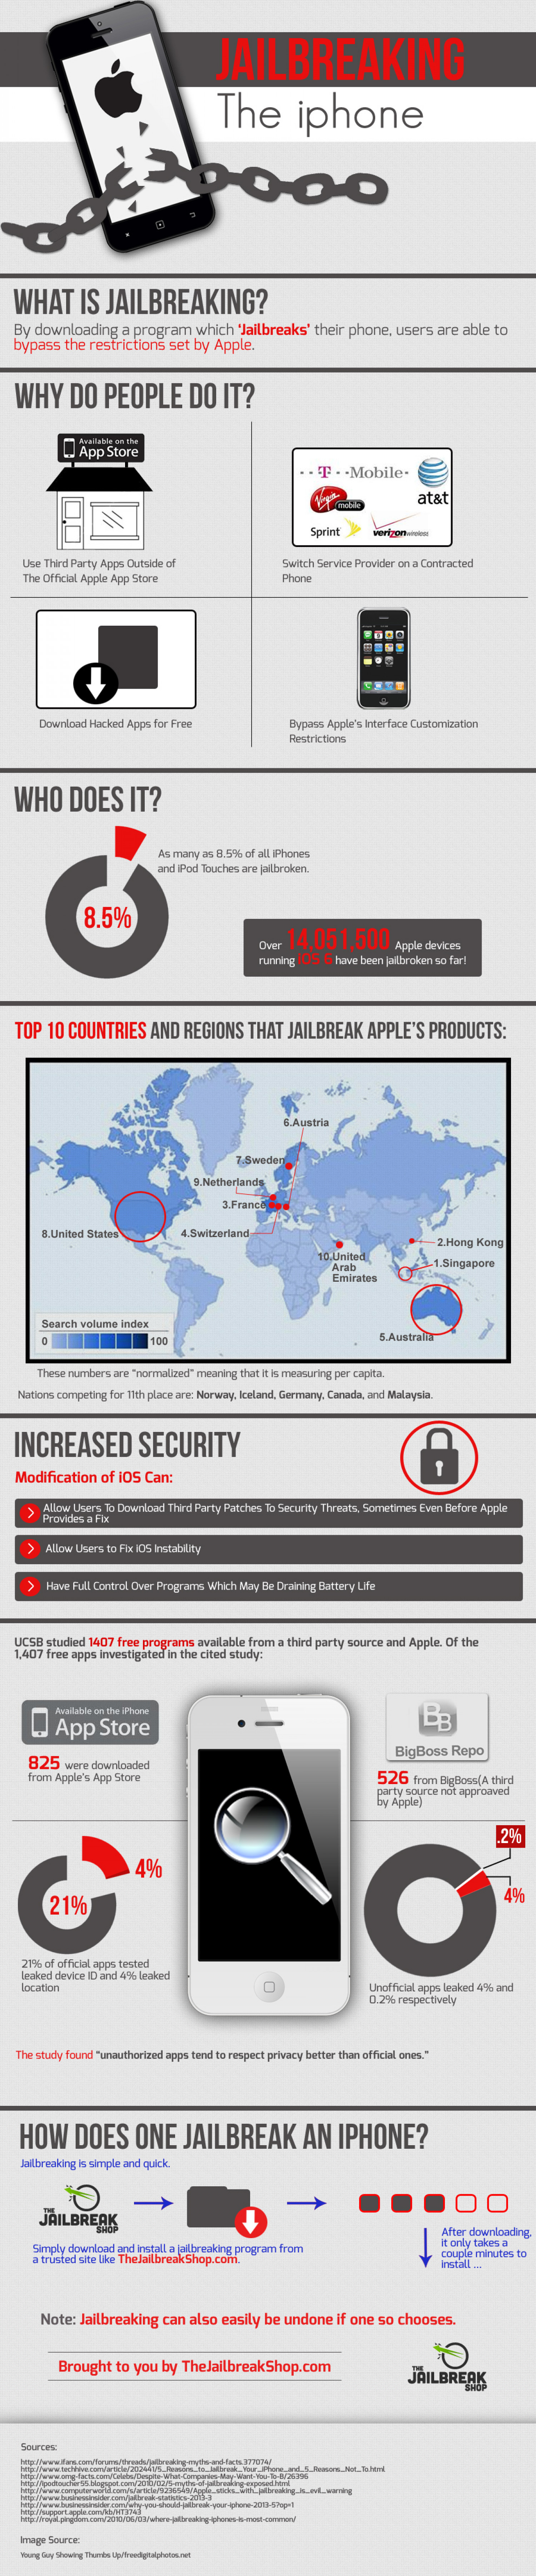 Jailbreaking the iphone Infographic